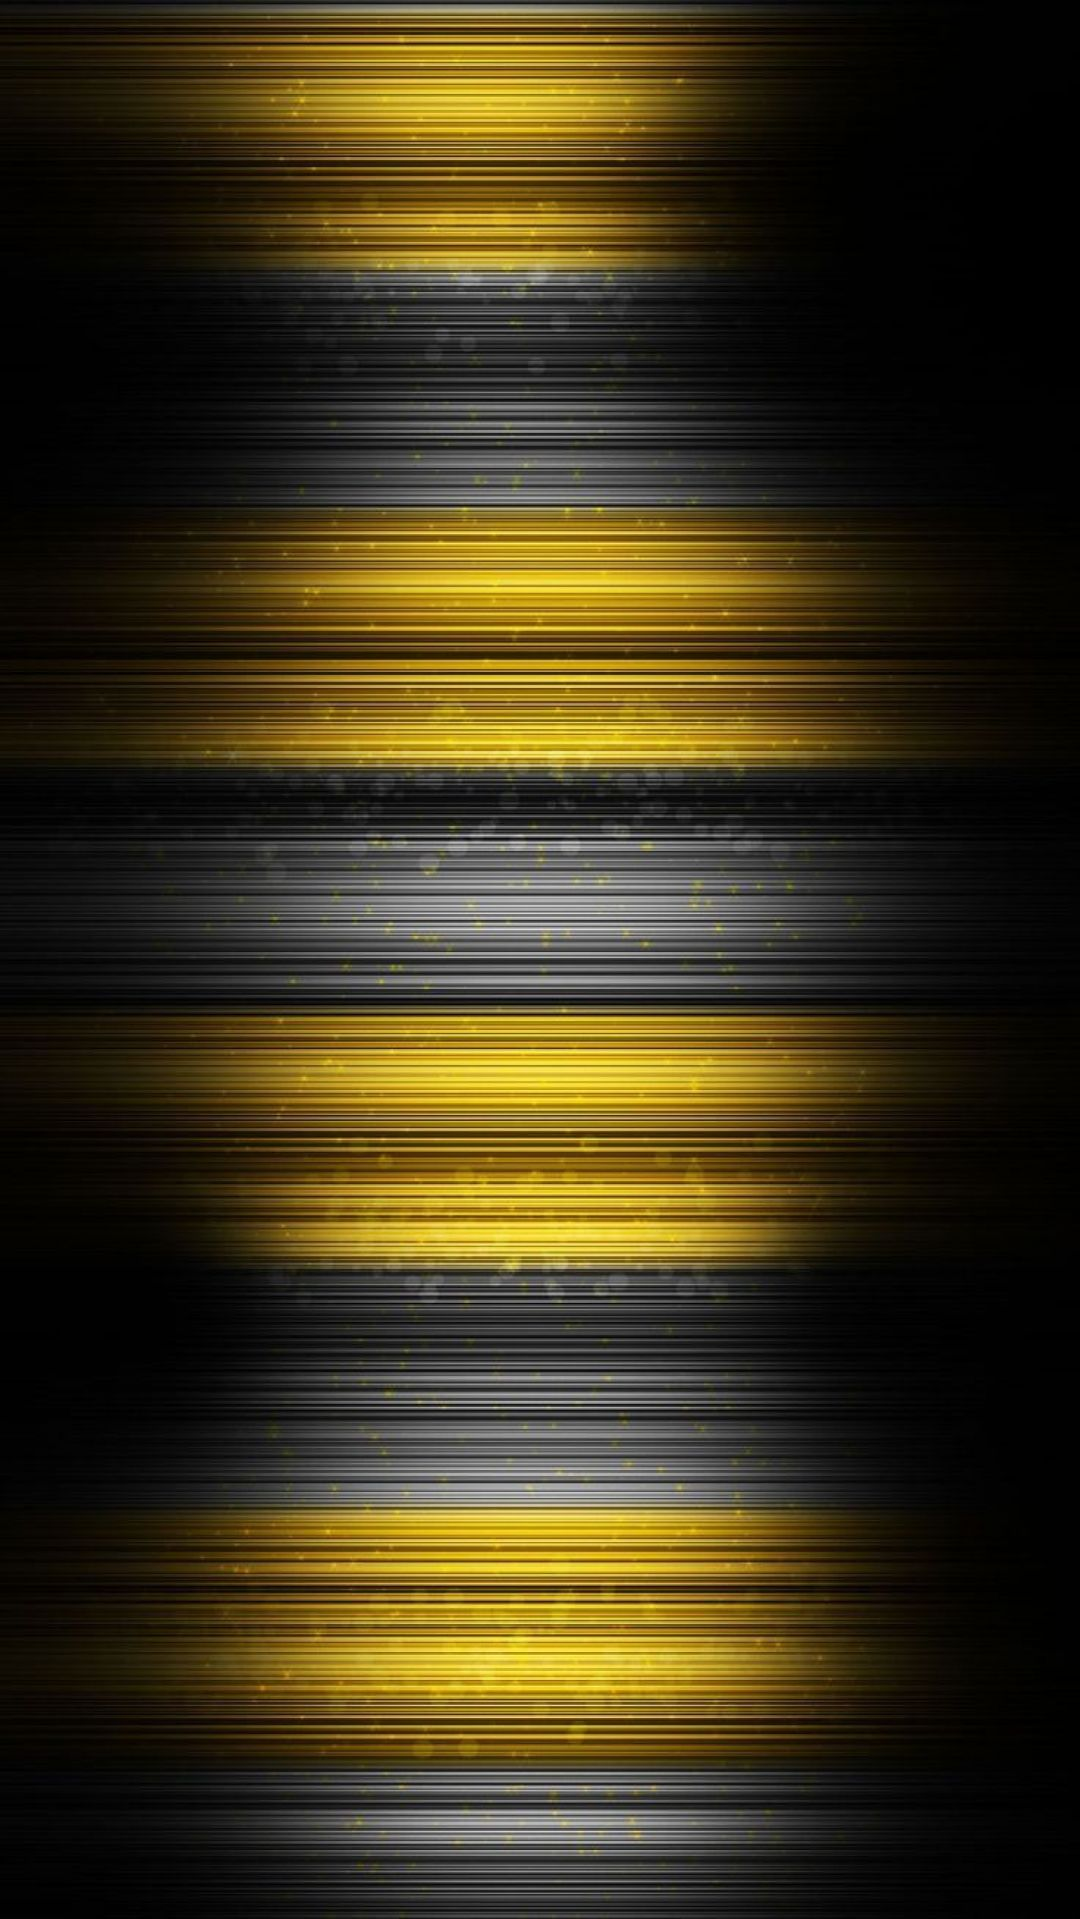 Iphone Black And Yellow Wallpaper Hd 1080p